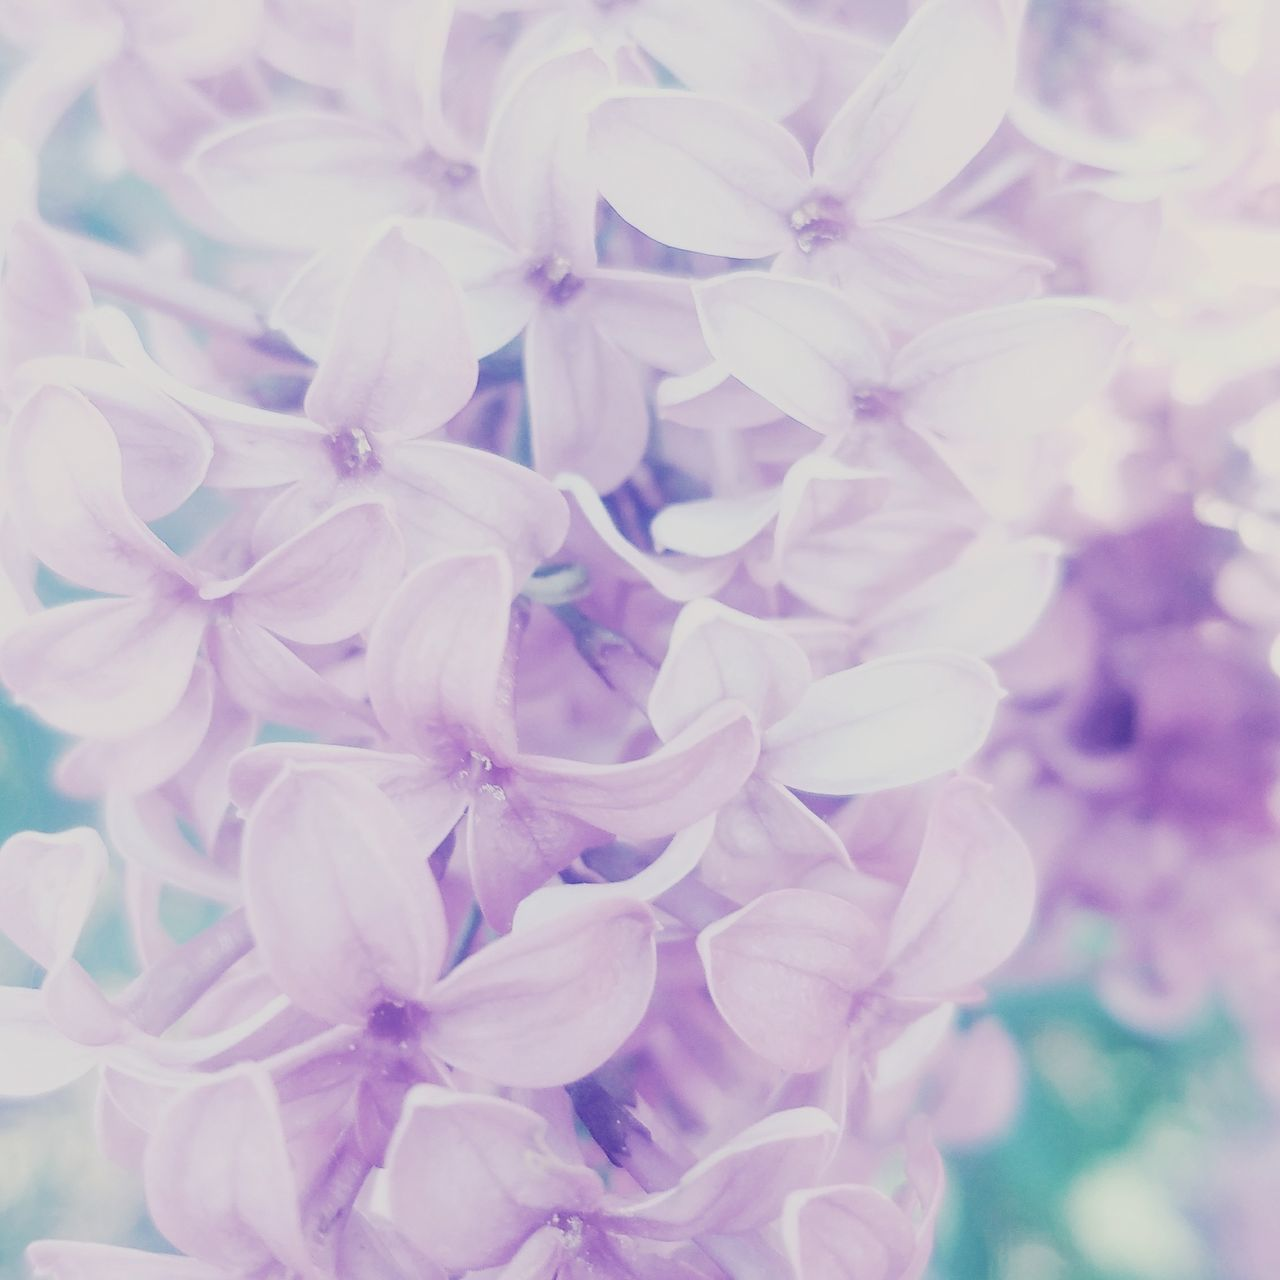 Flower Close-up Freshness Pastel Colored Pink Blush Pink Nudecolour Flower Head Beauty In Nature Petal Lilac Blossoms Hyacinth Flower